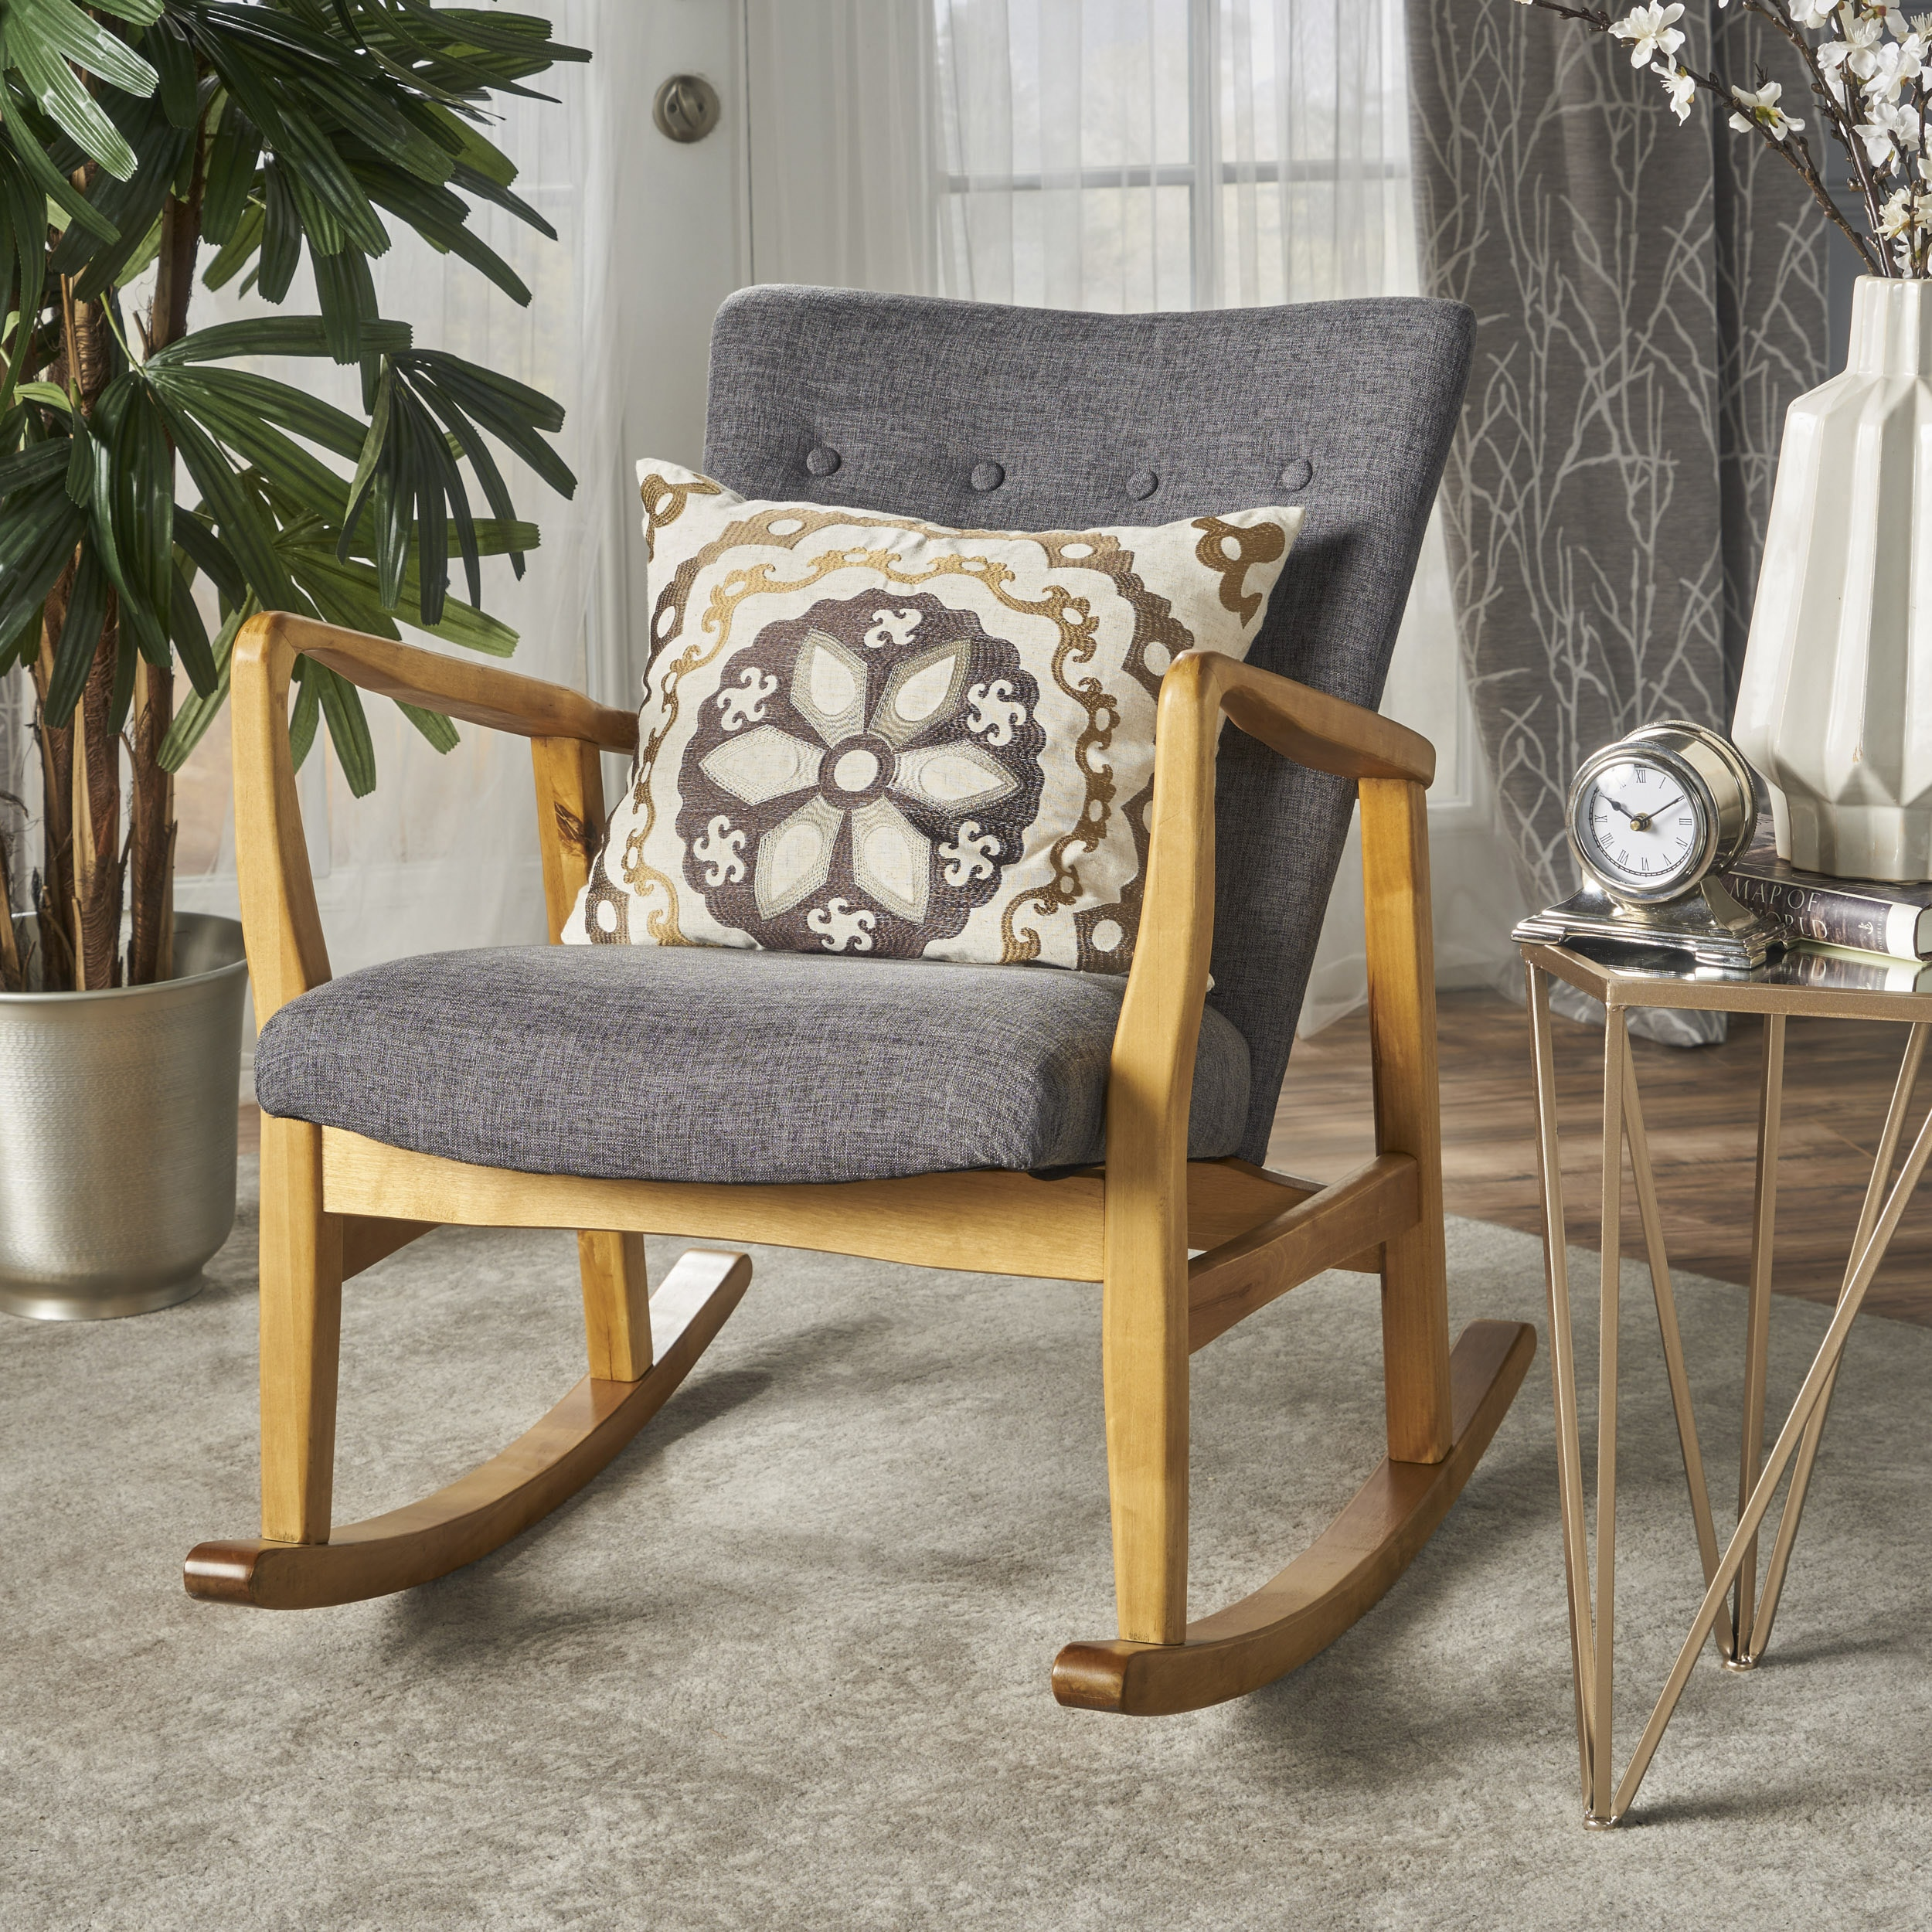 Callum Mid Century Fabric Rocking Chair By Christopher Knight Home On Sale Overstock 17801777